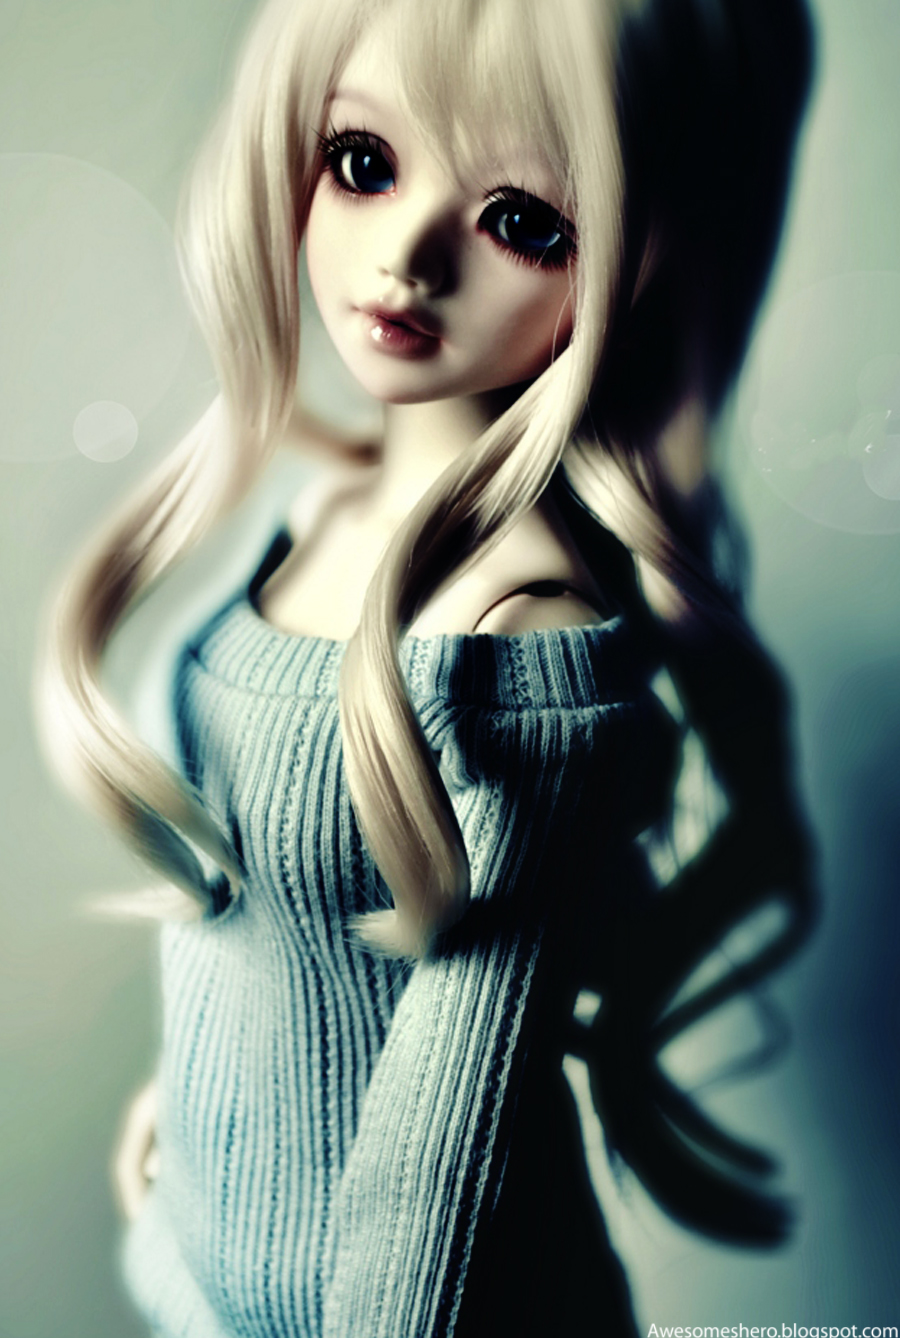 Beautiful barbie image for free download - Cute barbie pic download ...